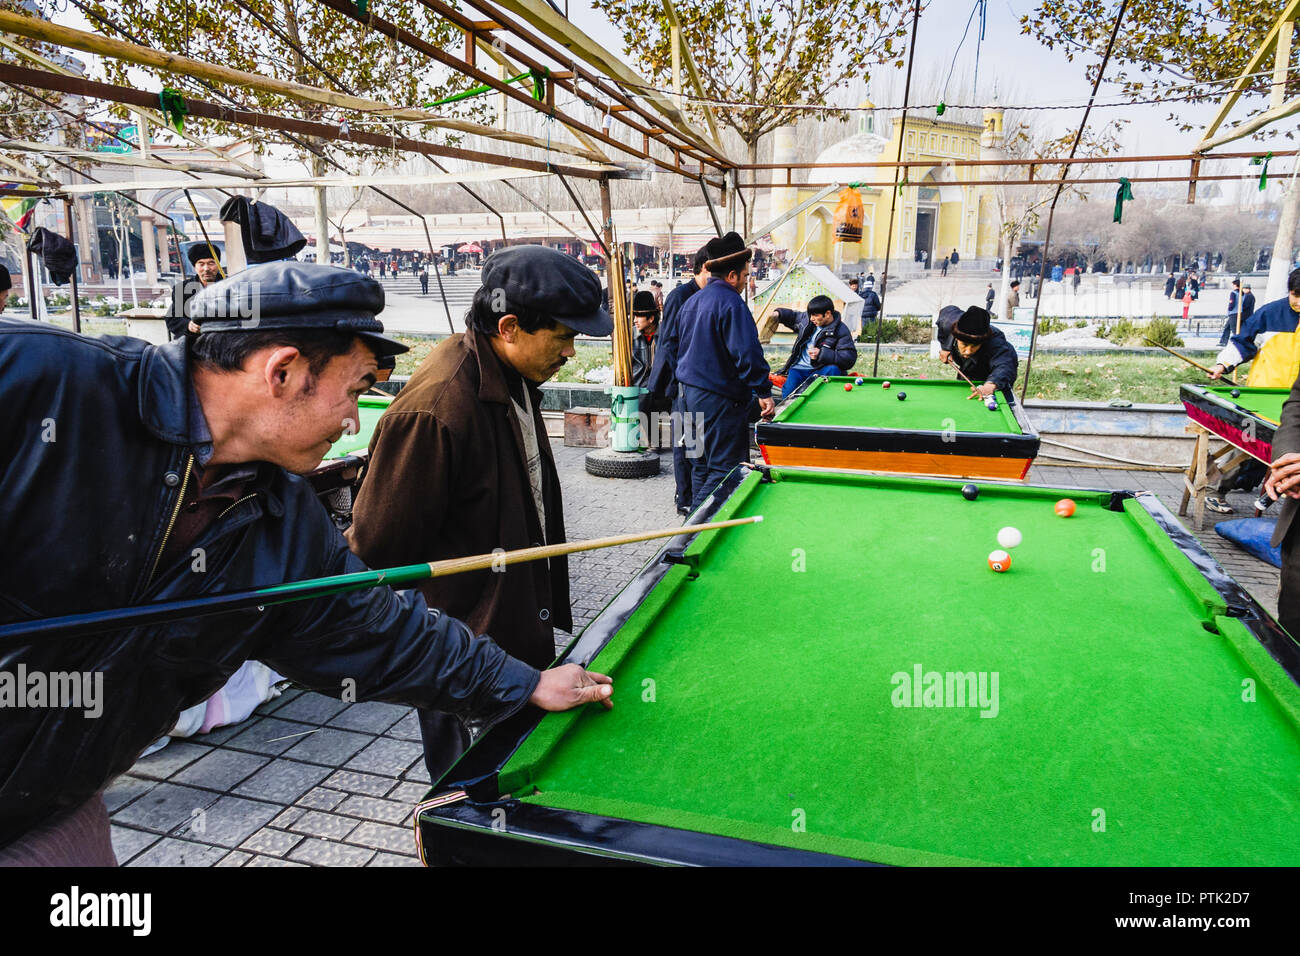 Uyghur men playing pool outside by the Id Kah Mosque. Kashgar, Xinjiang, China - Stock Image